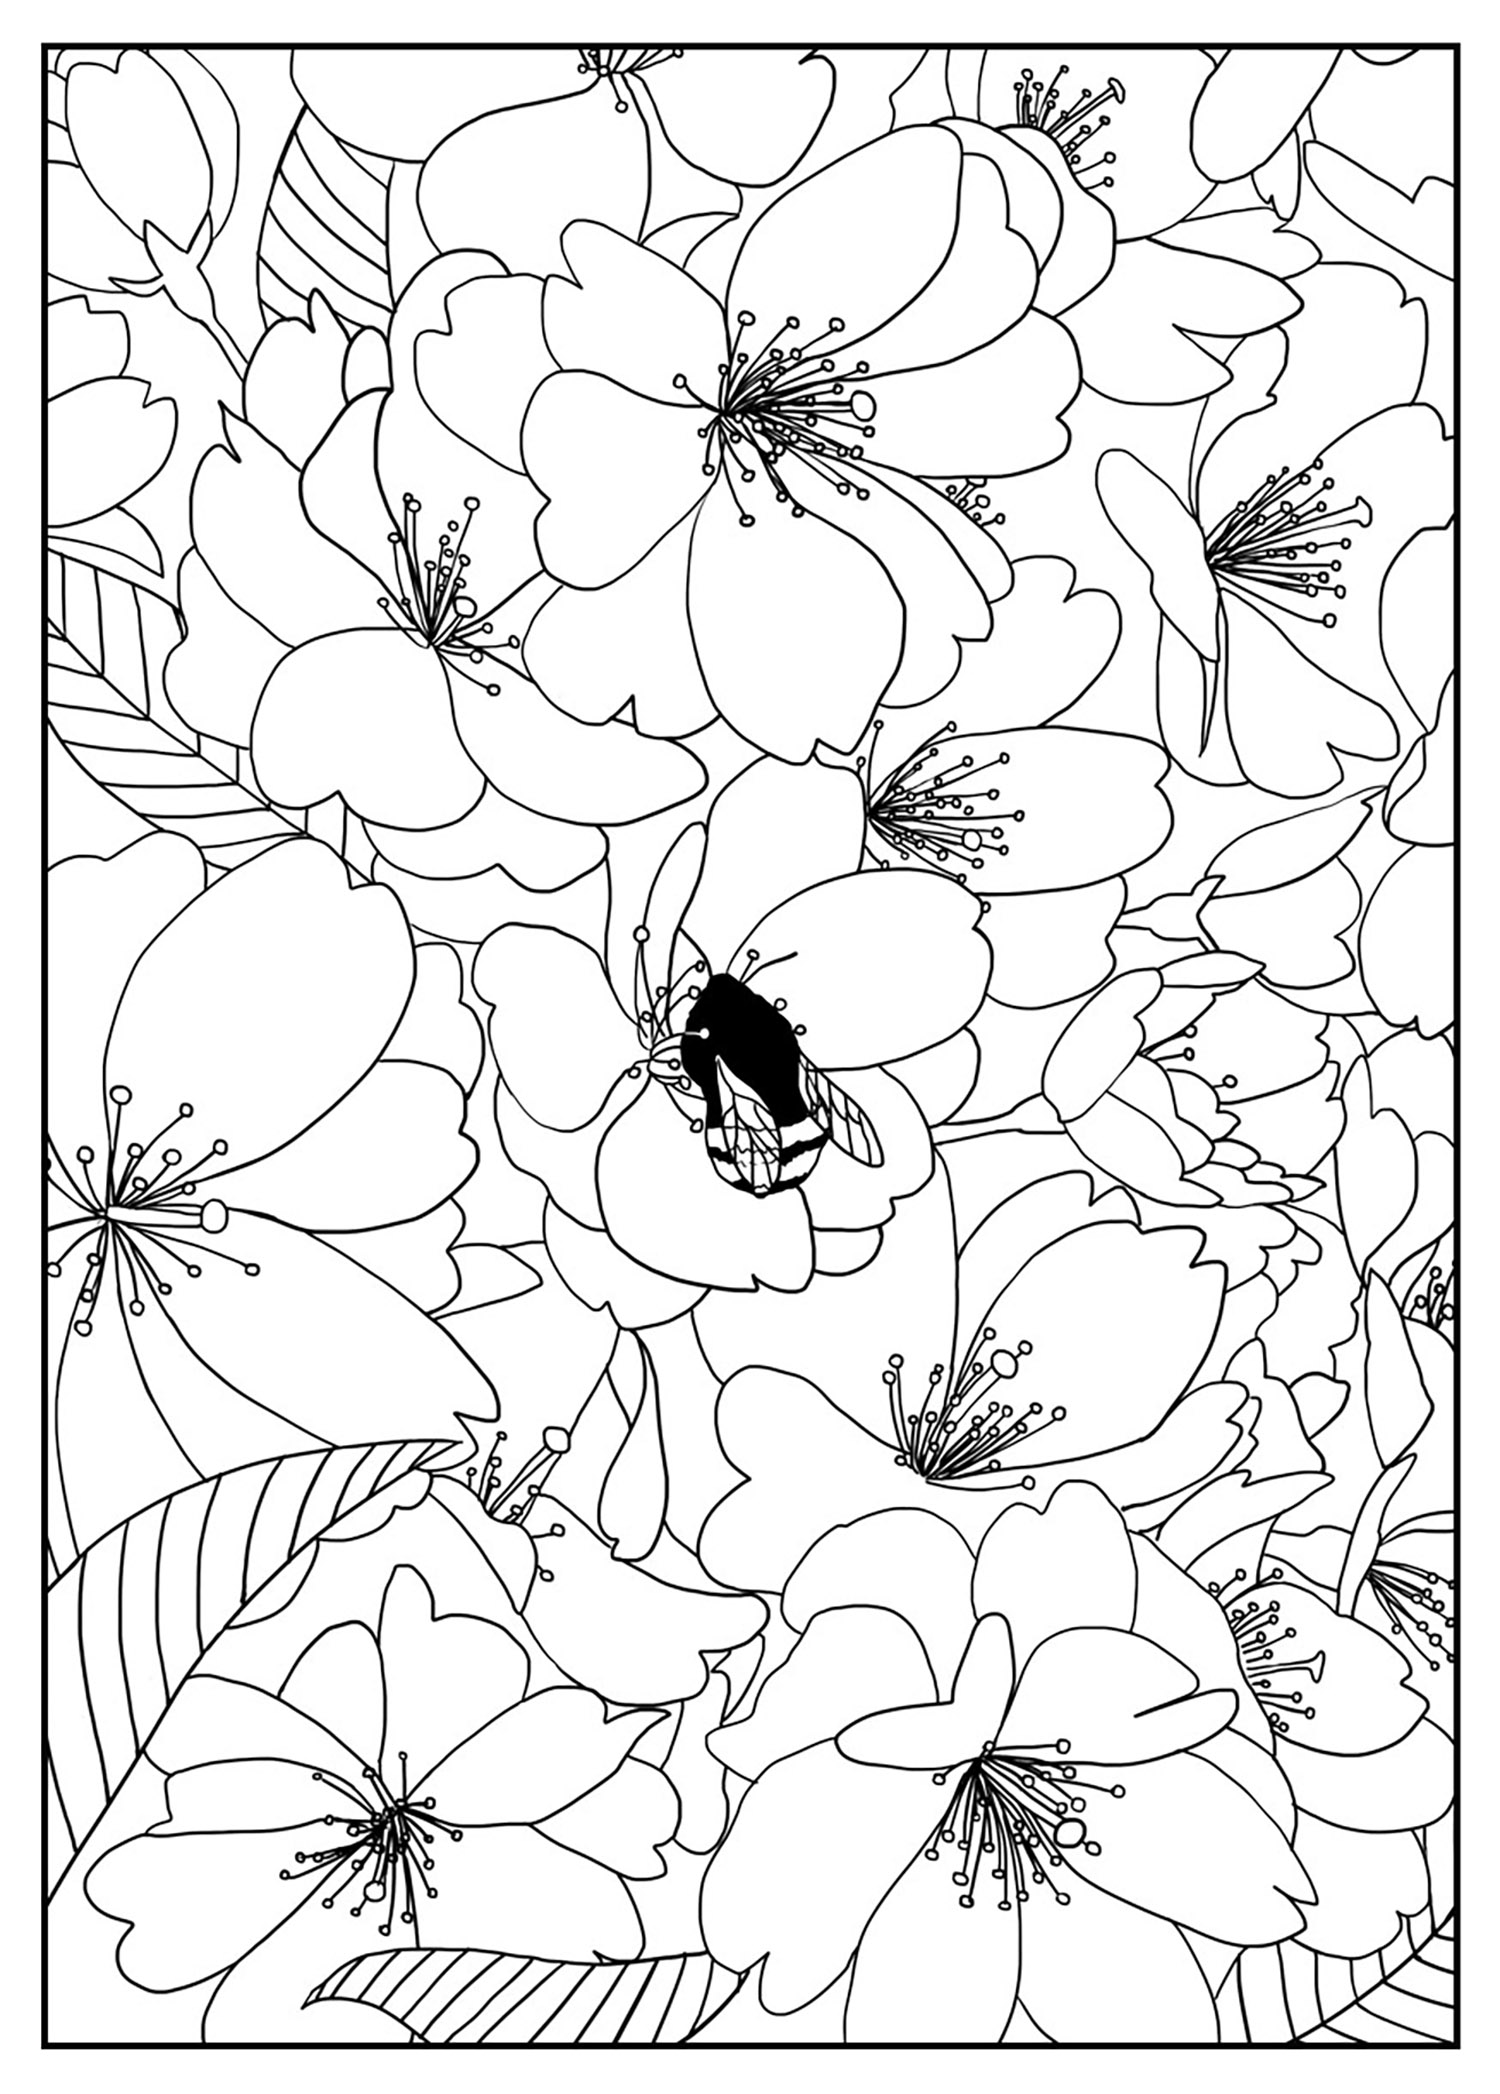 flower coloring pages printables flower coloring pages part 3 flower coloring printables pages